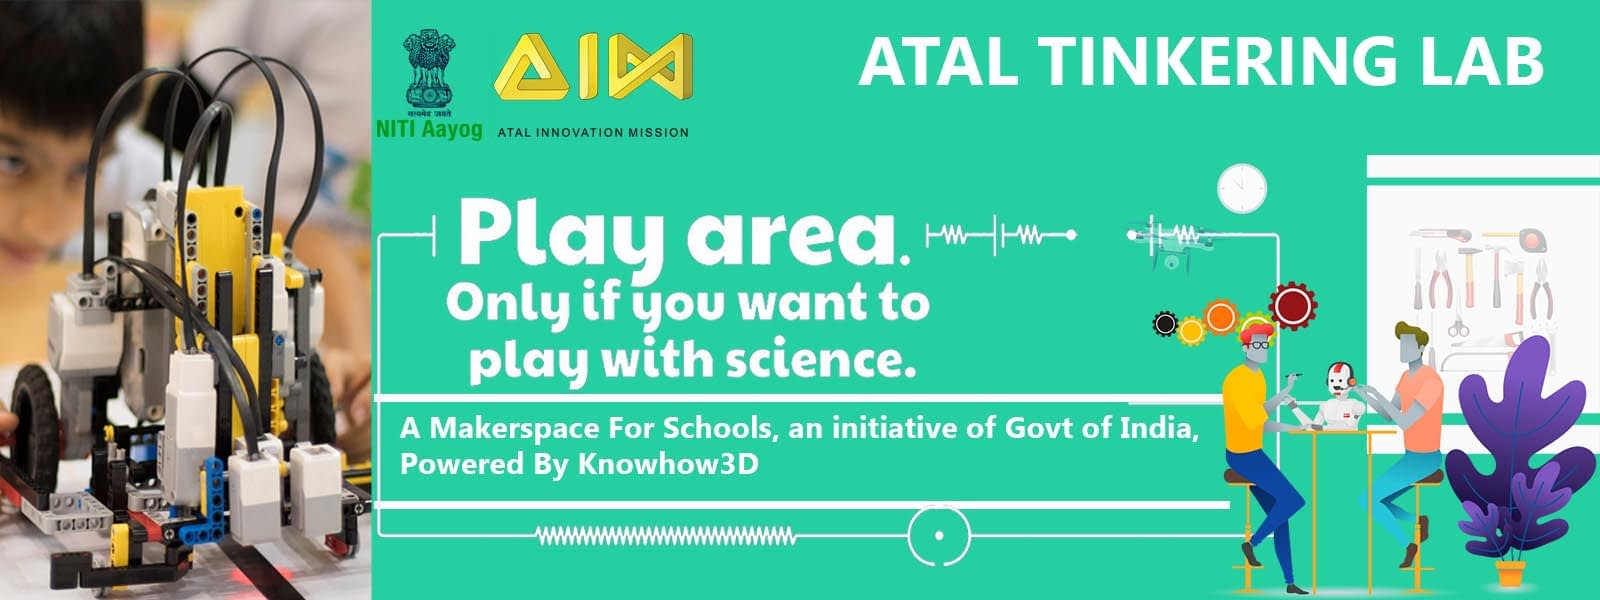 Atal Tinkering lab set up by knowhow3d